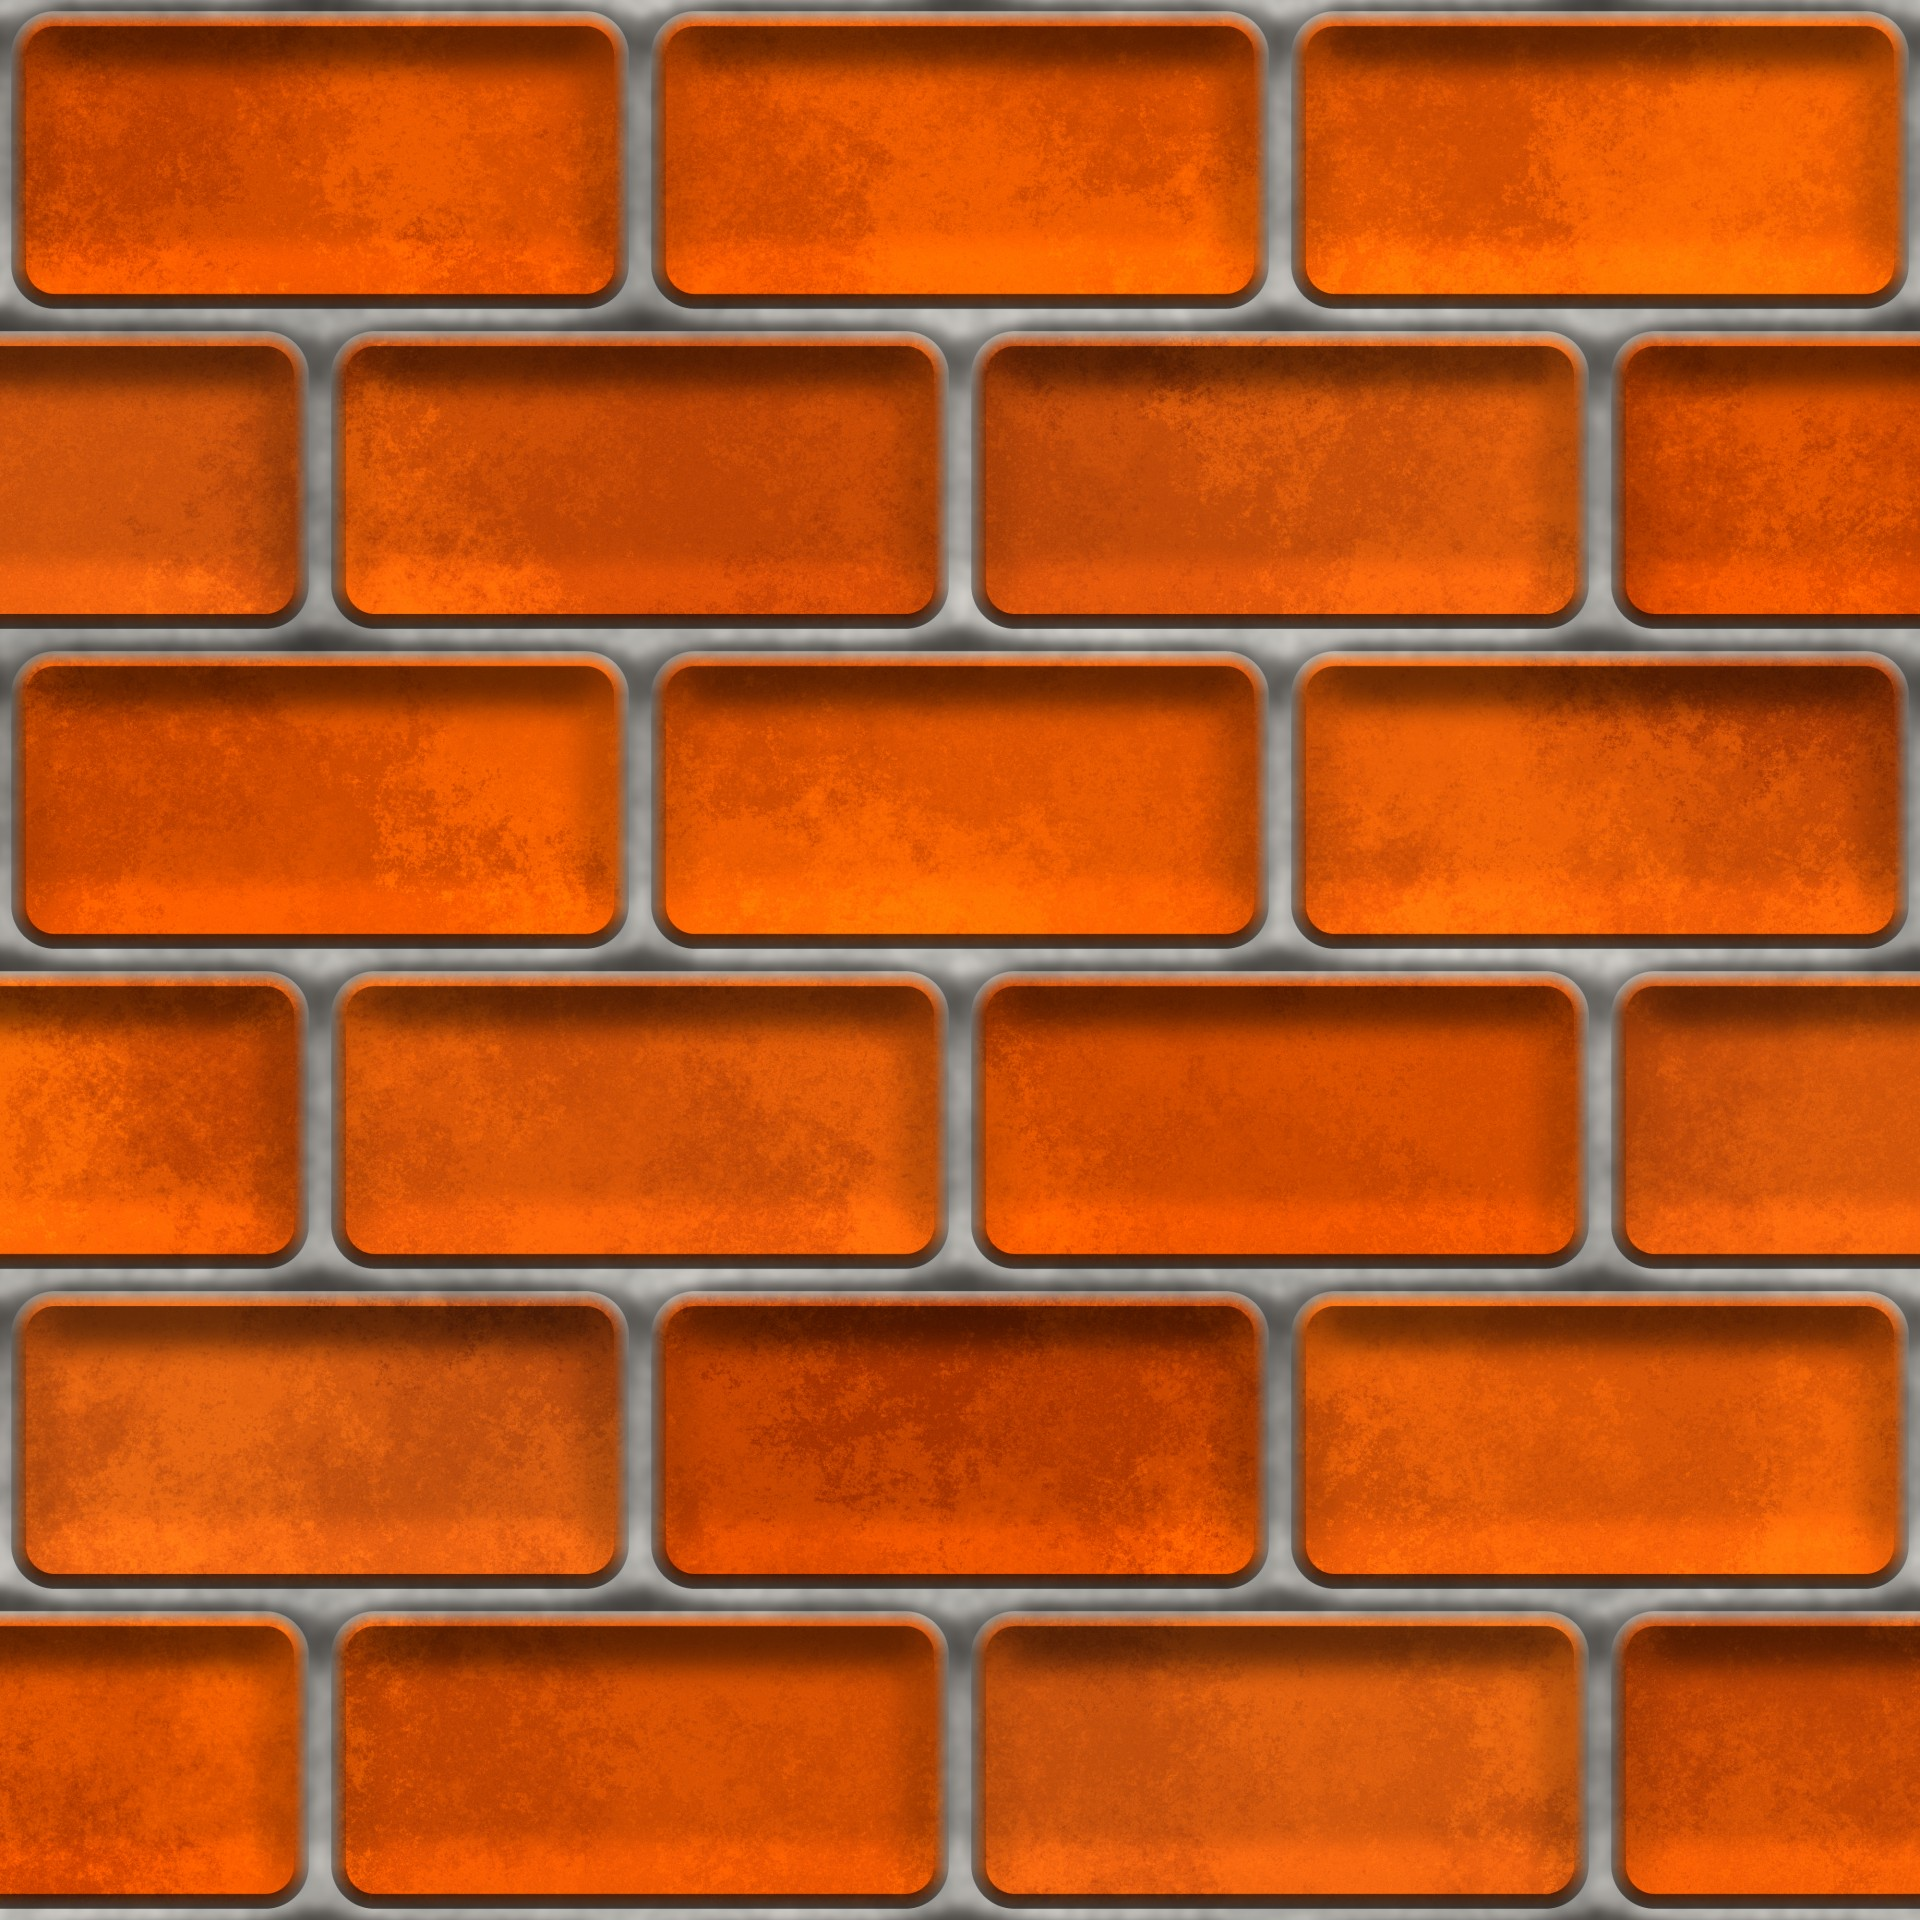 Red Orange Brick Wall Free Stock Photo - Public Domain Pictures